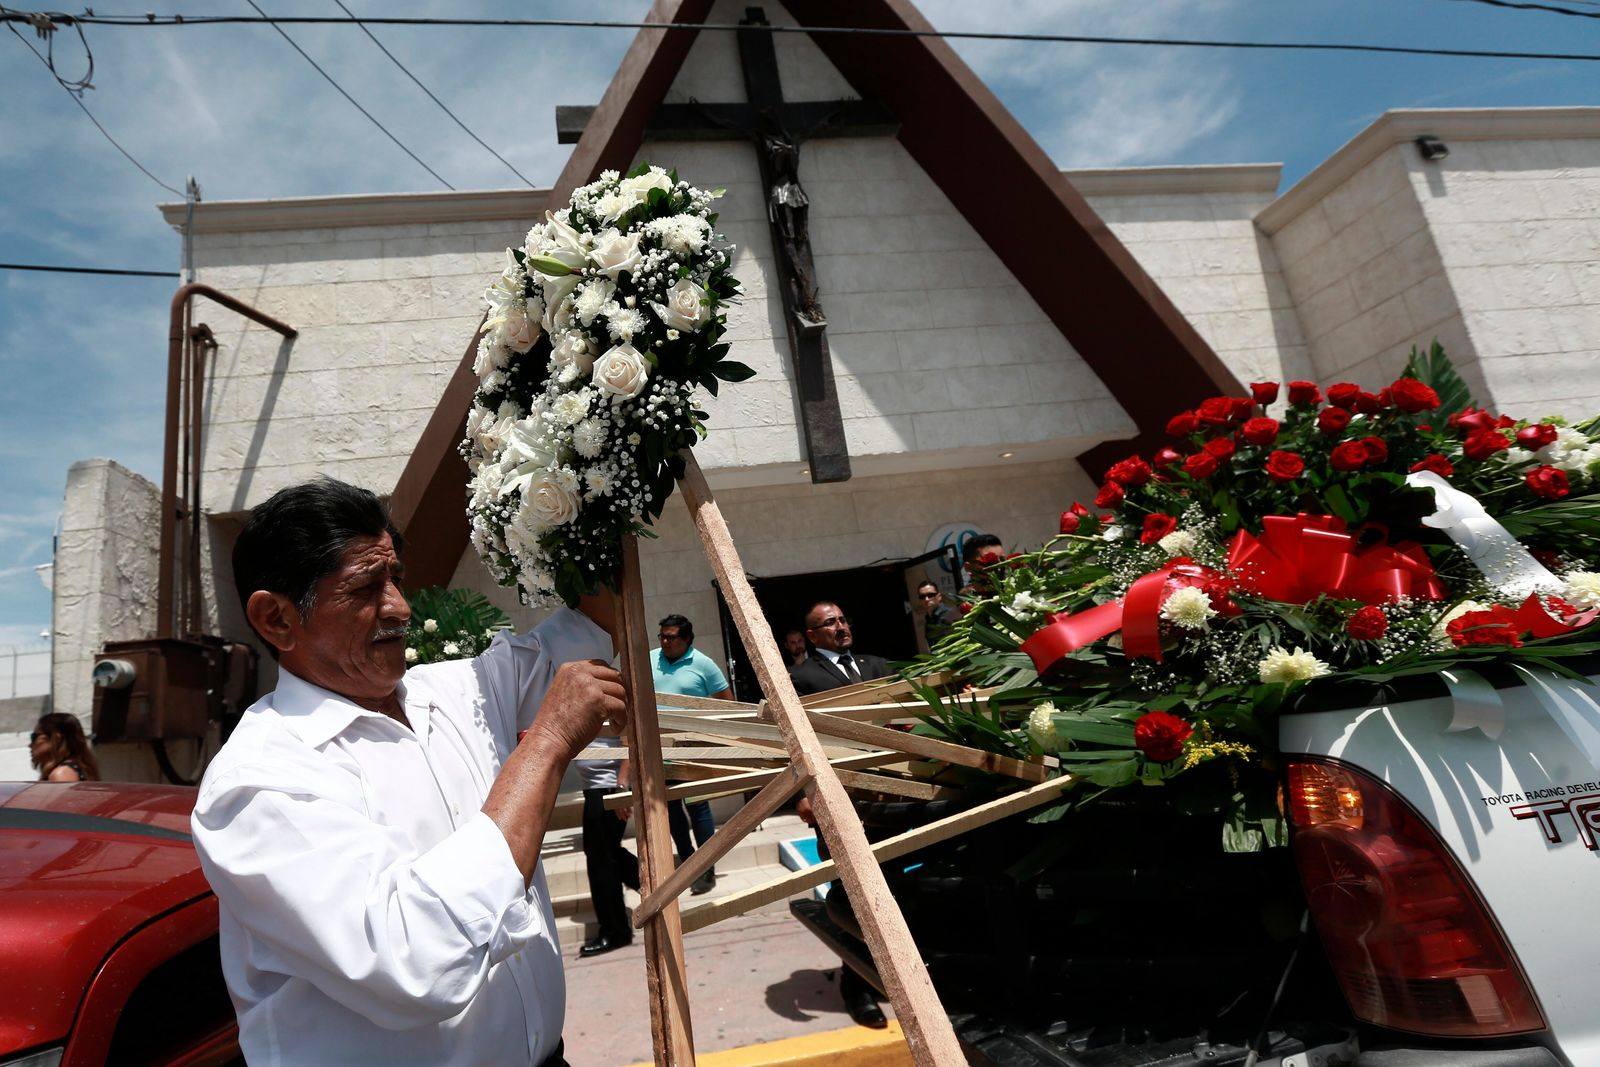 A man unloads funeral wreaths for a memorial service for Ivan Manzano, who was killed in the El Paso mass shooting, outside the Perches funeral home in Ciudad Juarez, Mexico, Friday, Aug. 9, 2019. Families of those killed when a gunman opened fire at an El Paso Walmart are gathering at funerals on each side of the U.S.-Mexico border to remember loved ones.  (AP Photo/Christian Chavez)